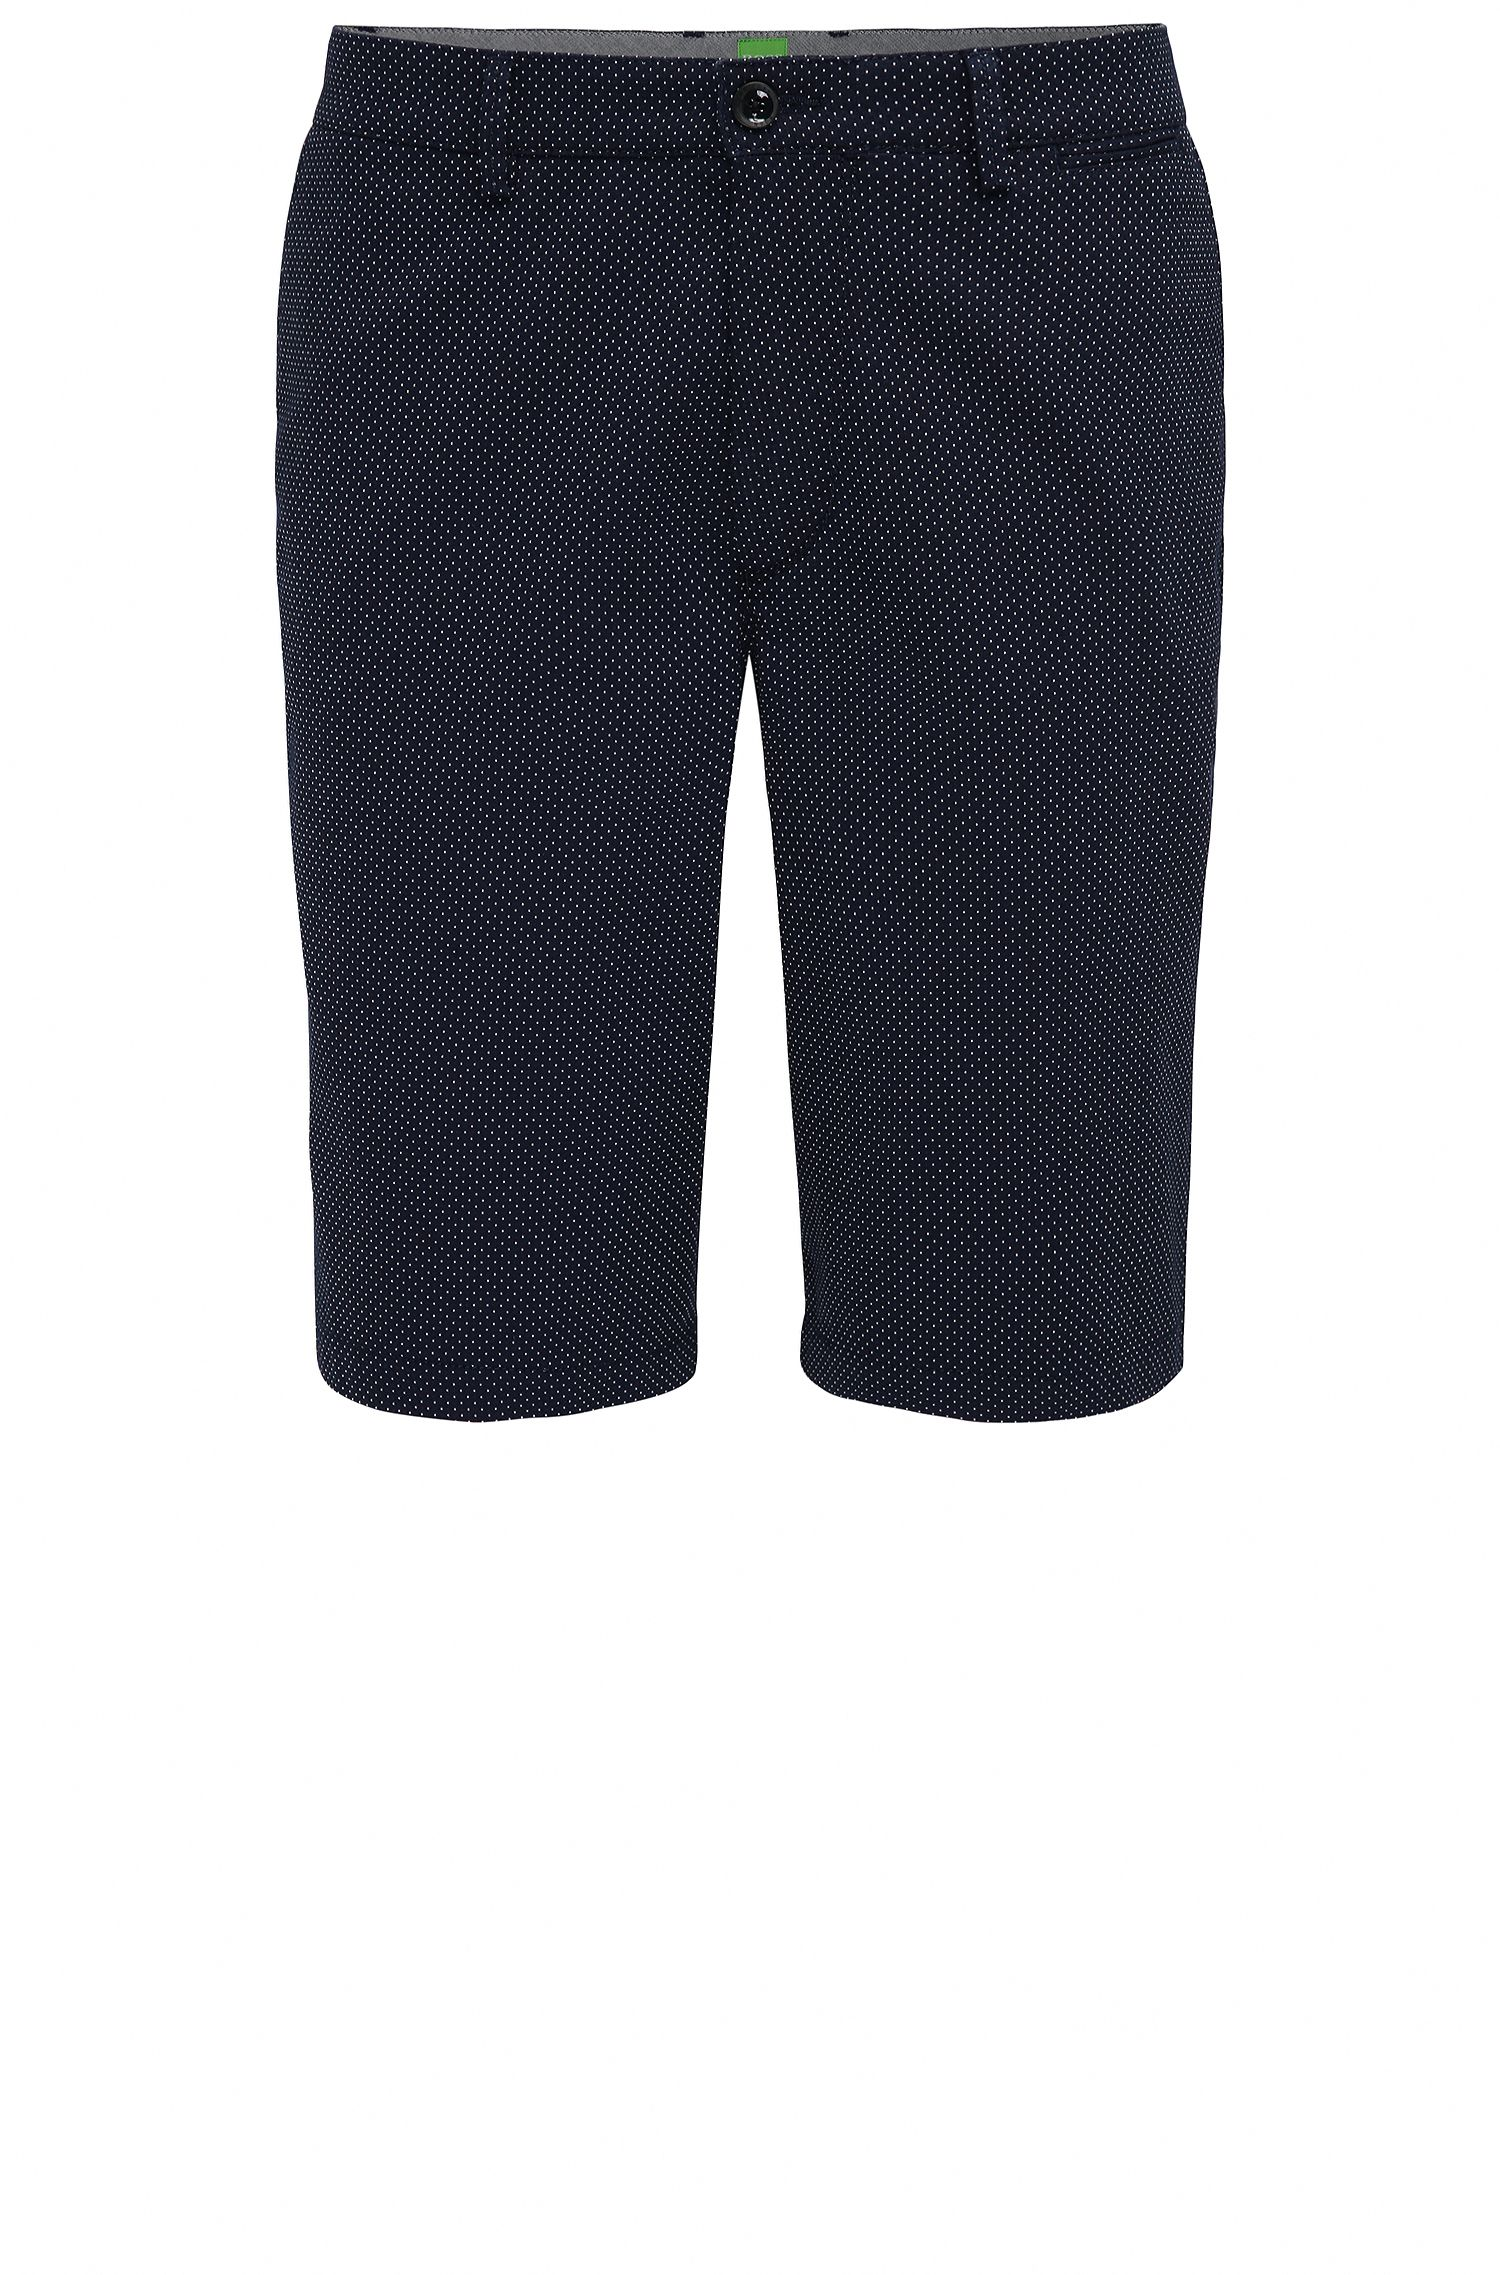 Pantaloncini corti regular fit in jacquard a pois